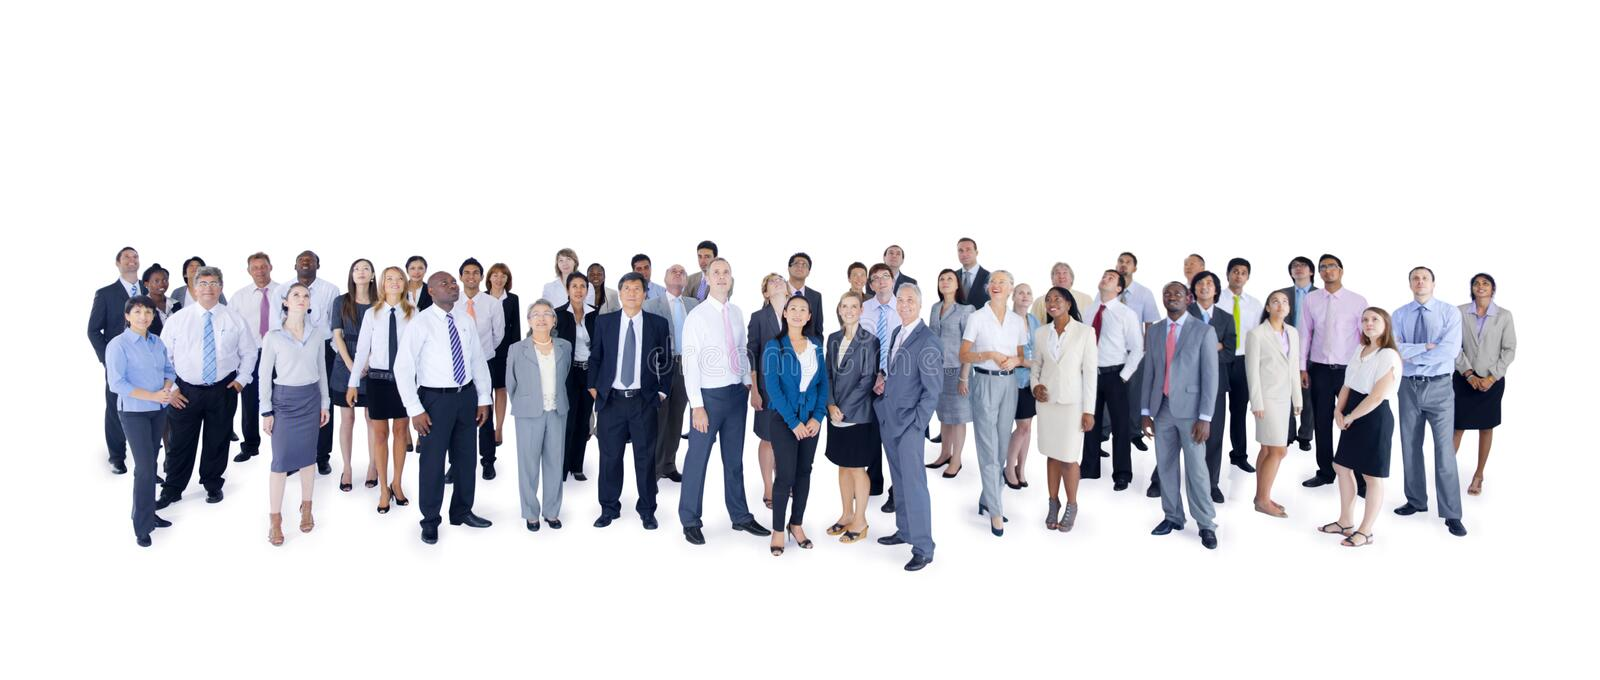 Group of Multiethnic World Business People.  royalty free stock photos